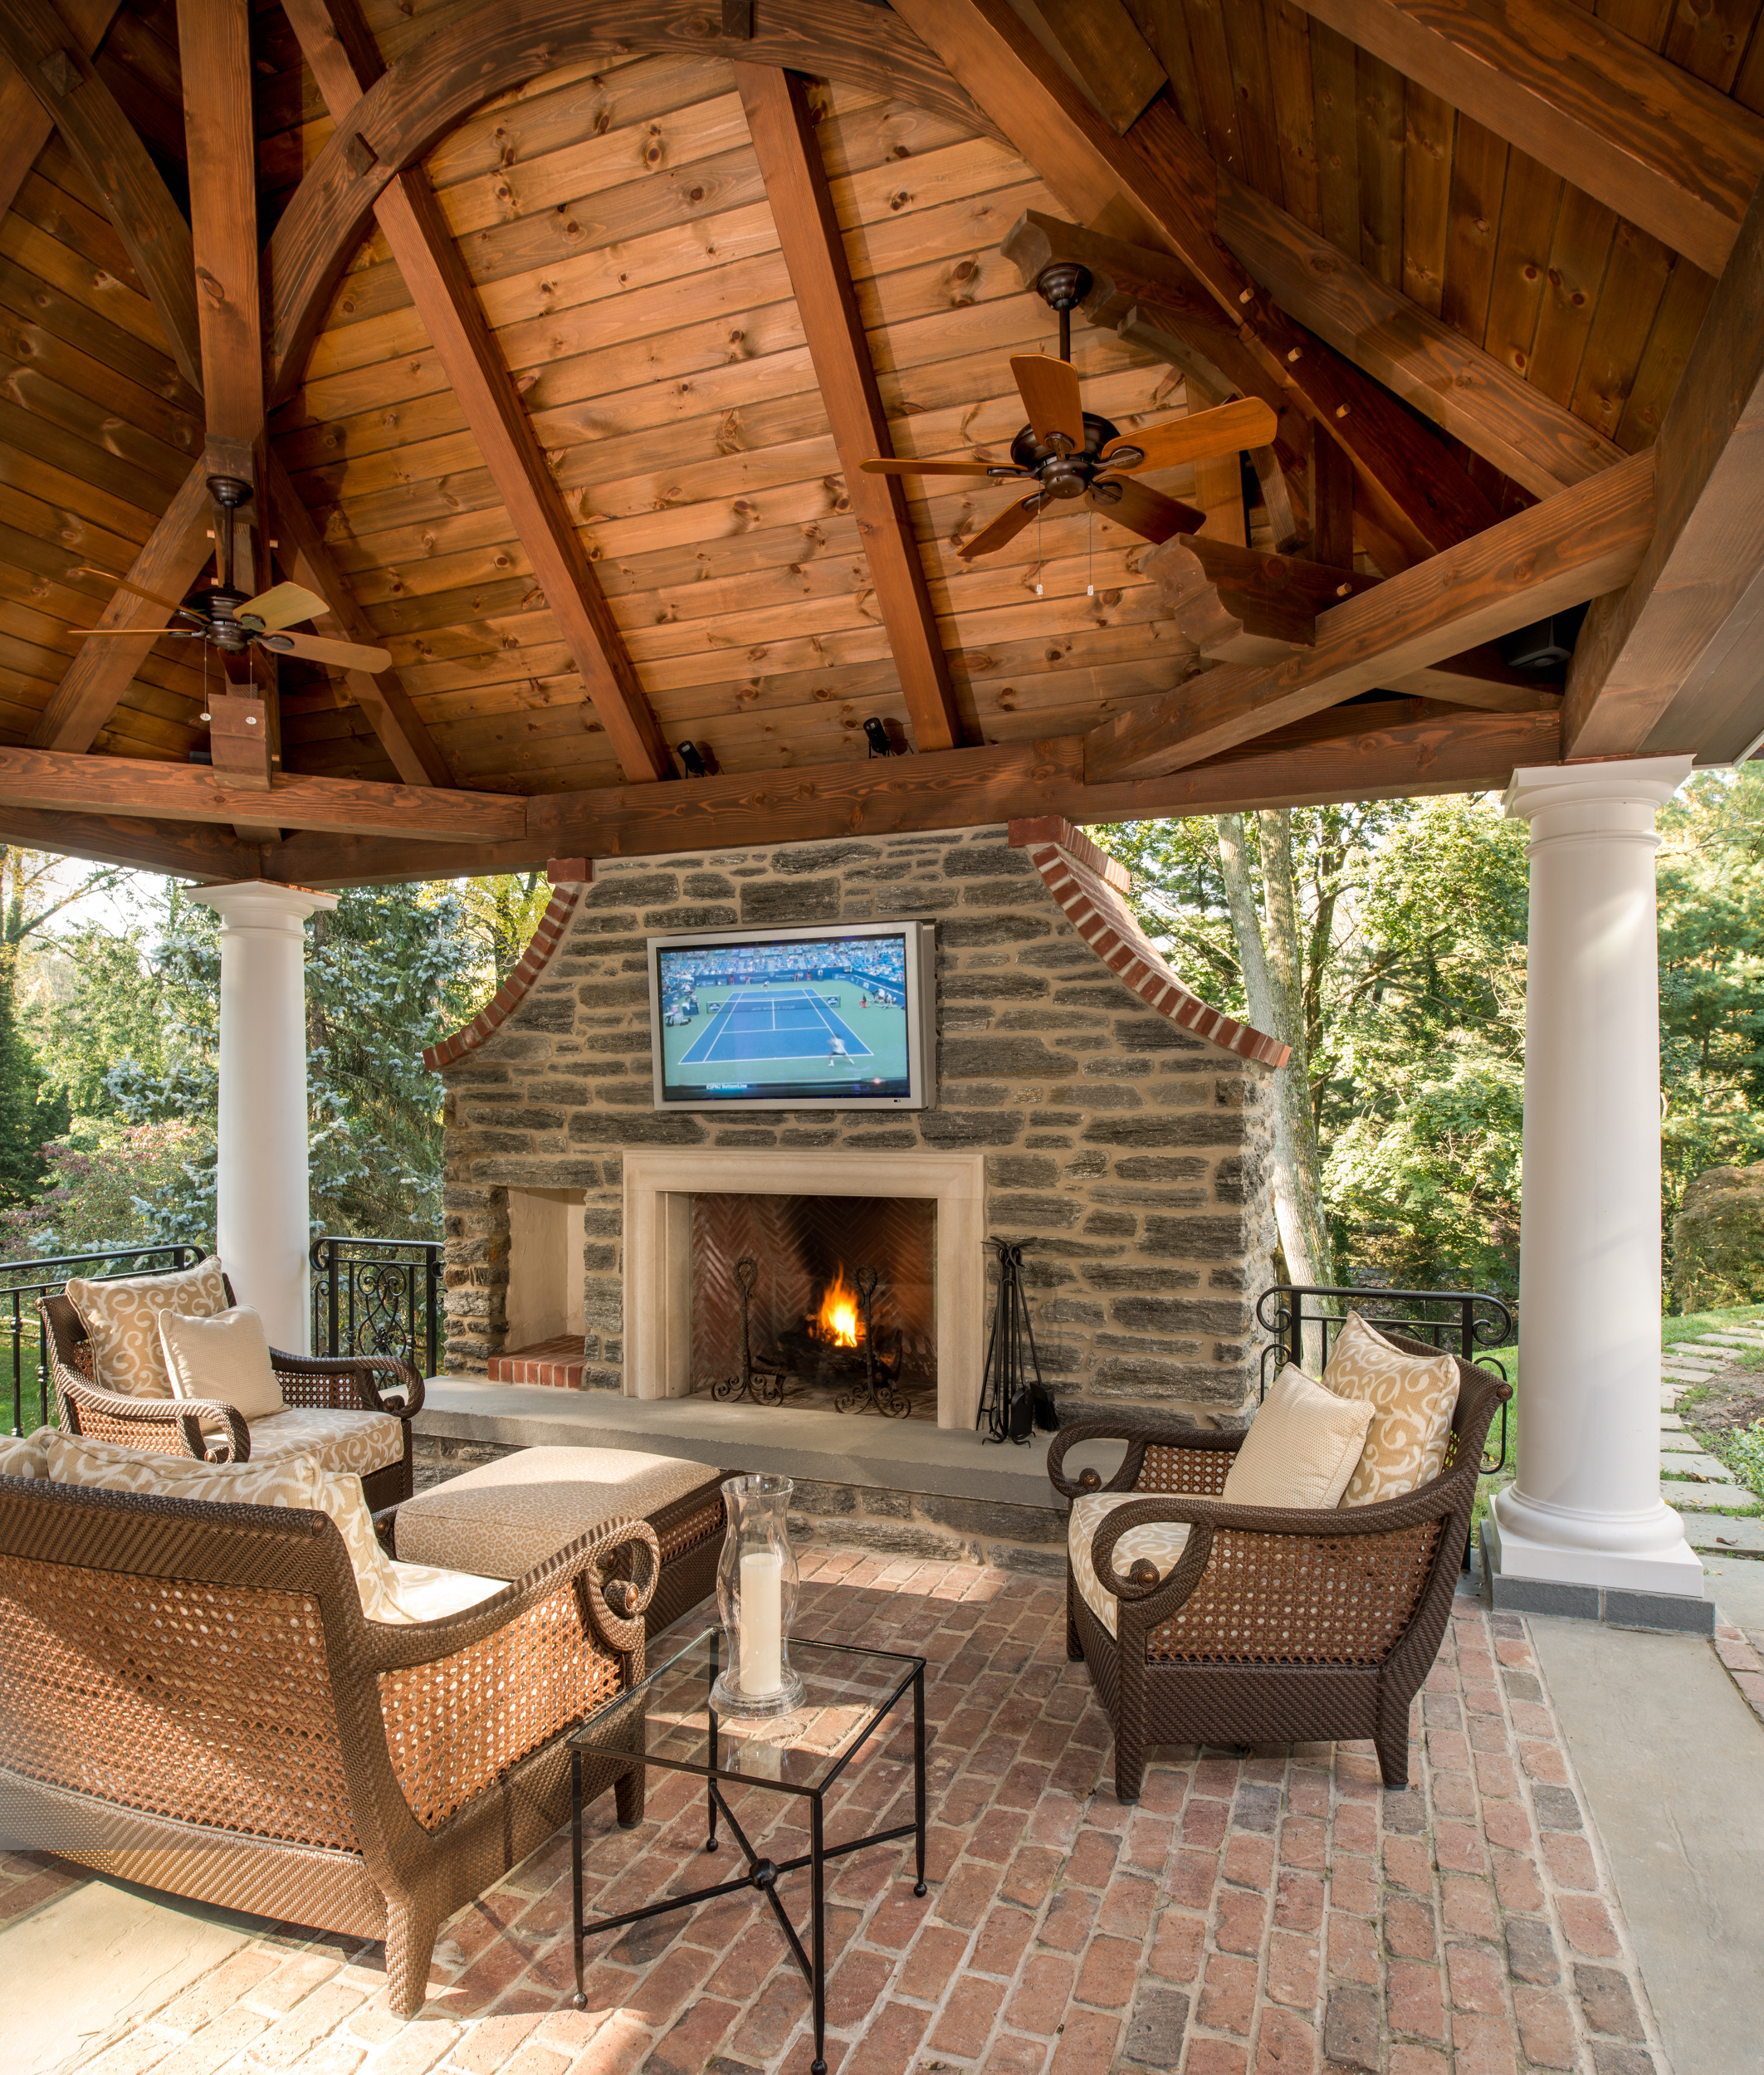 Timber frame pool house archives hugh lofting timber for Outdoor patio fireplace ideas